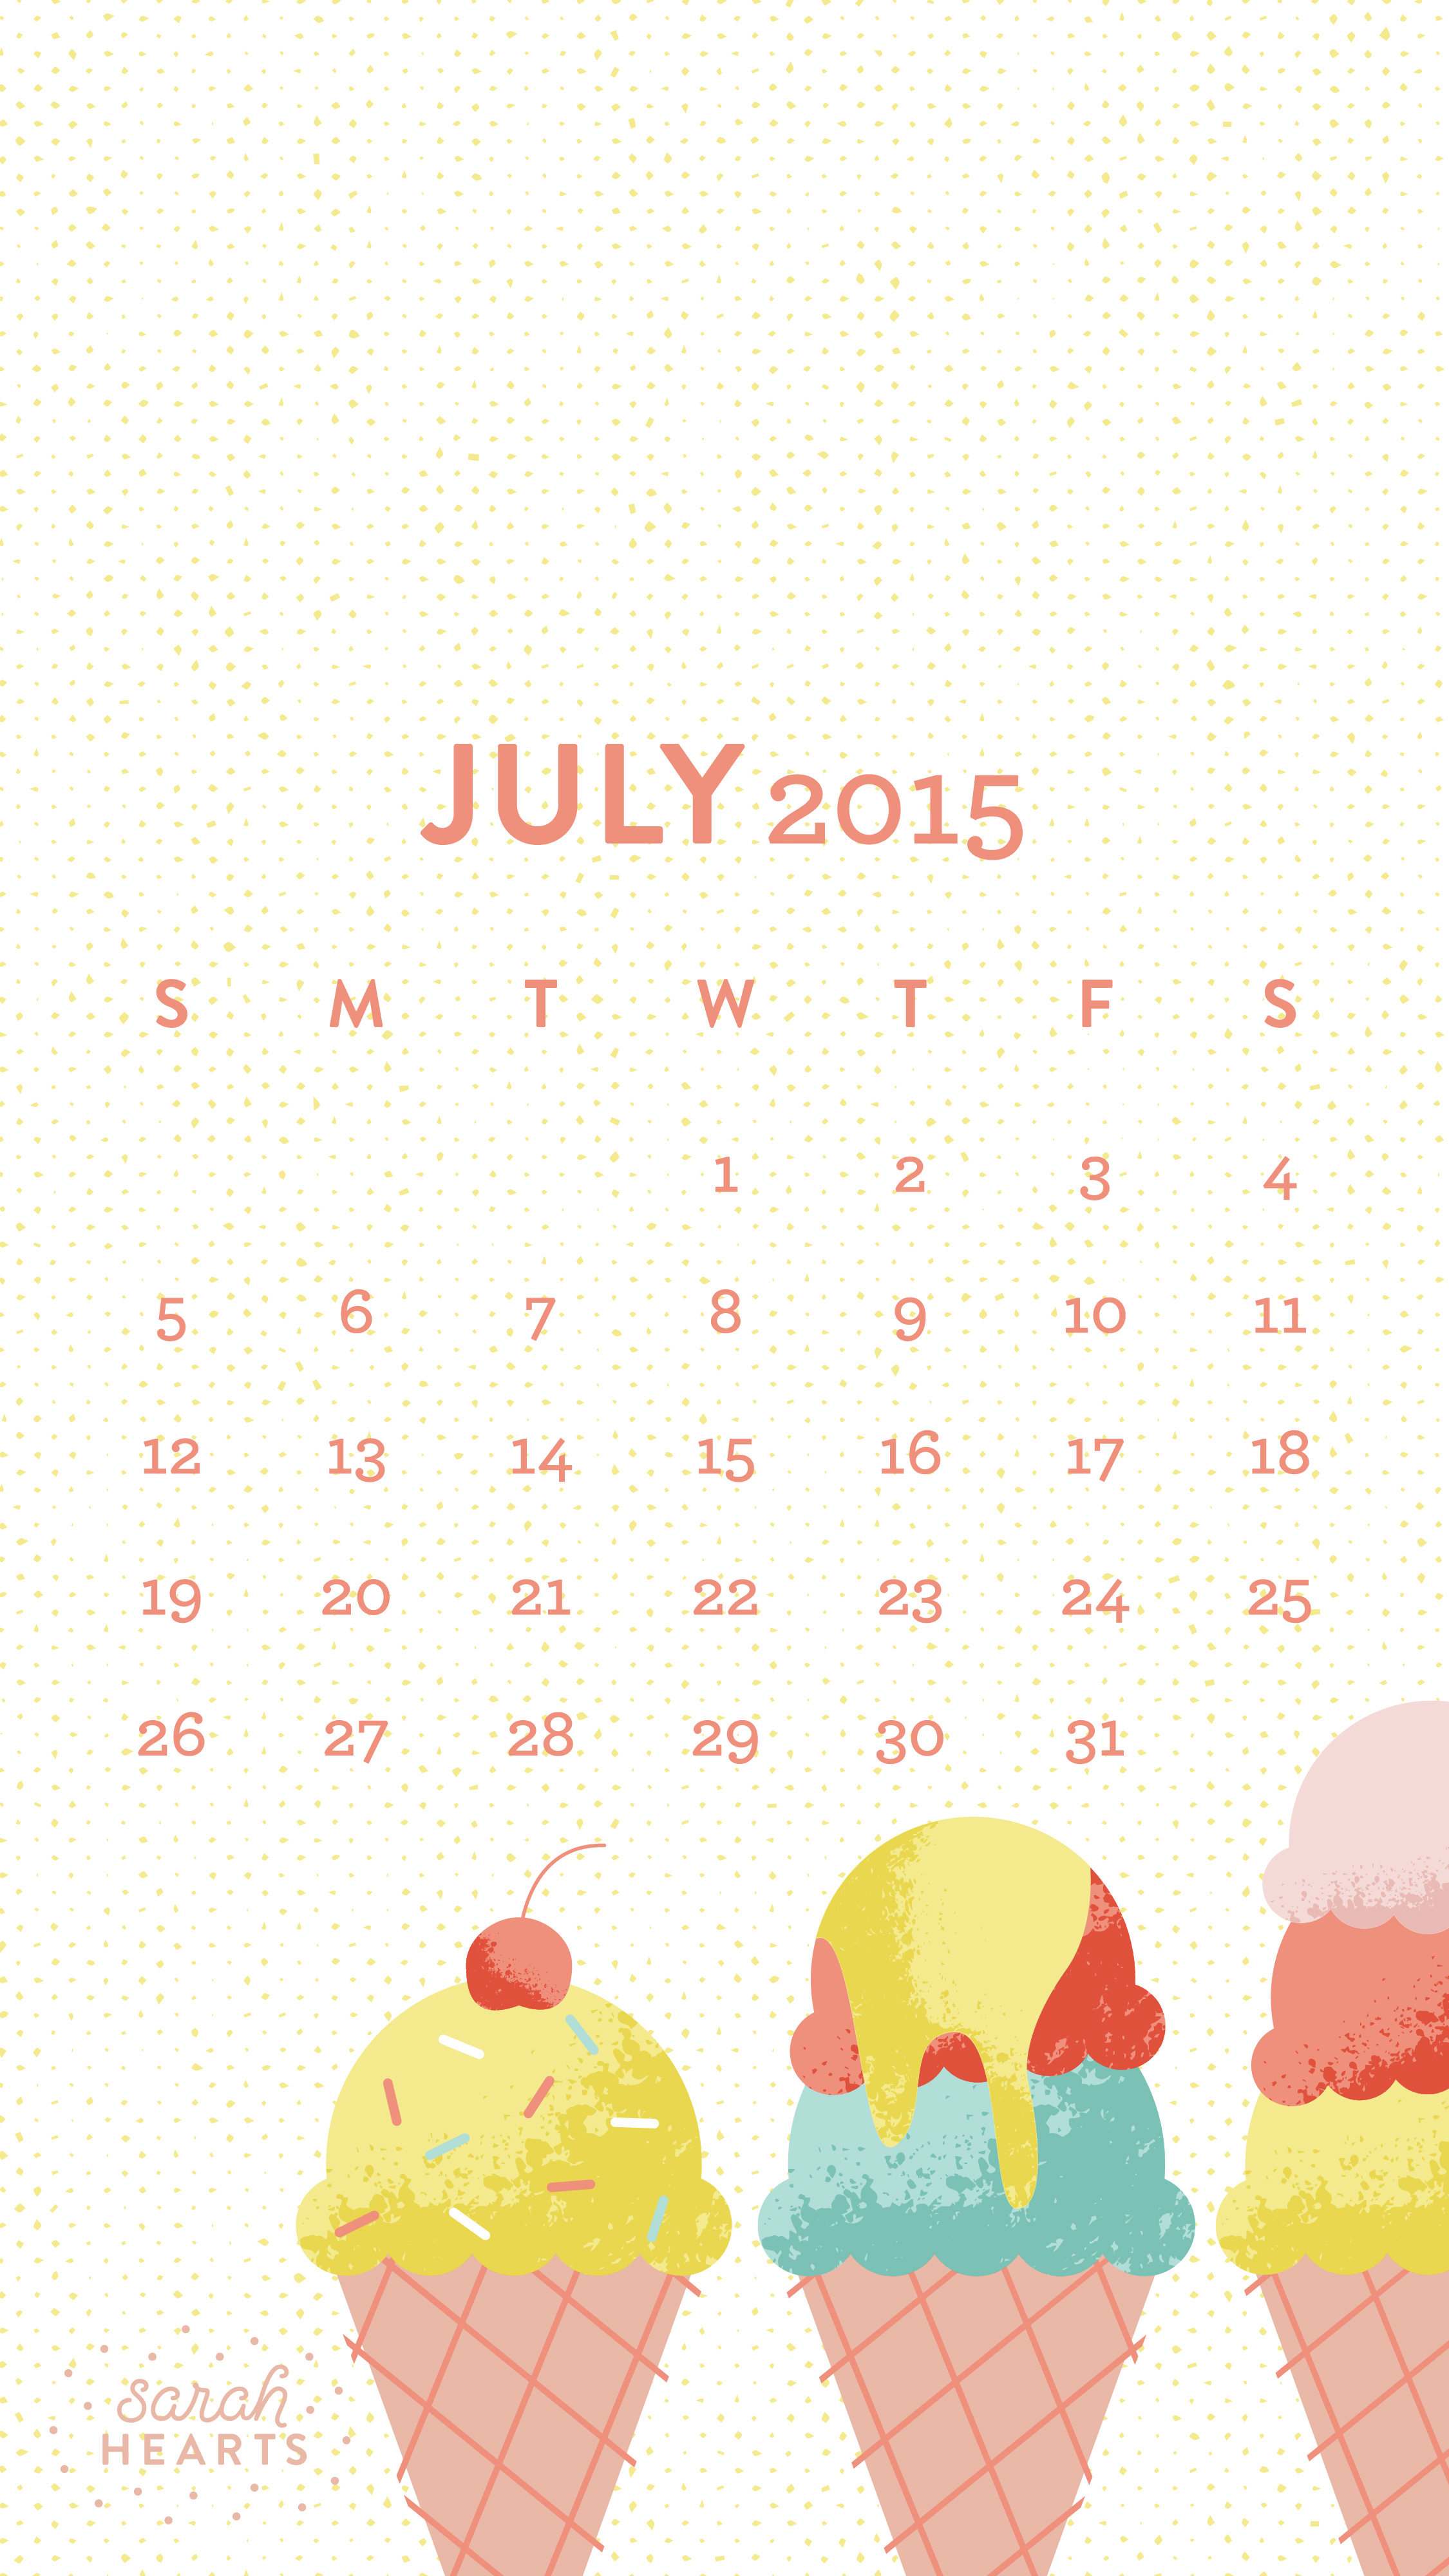 July 2015 Calendar Wallpaper   Sarah Hearts 2250x4000